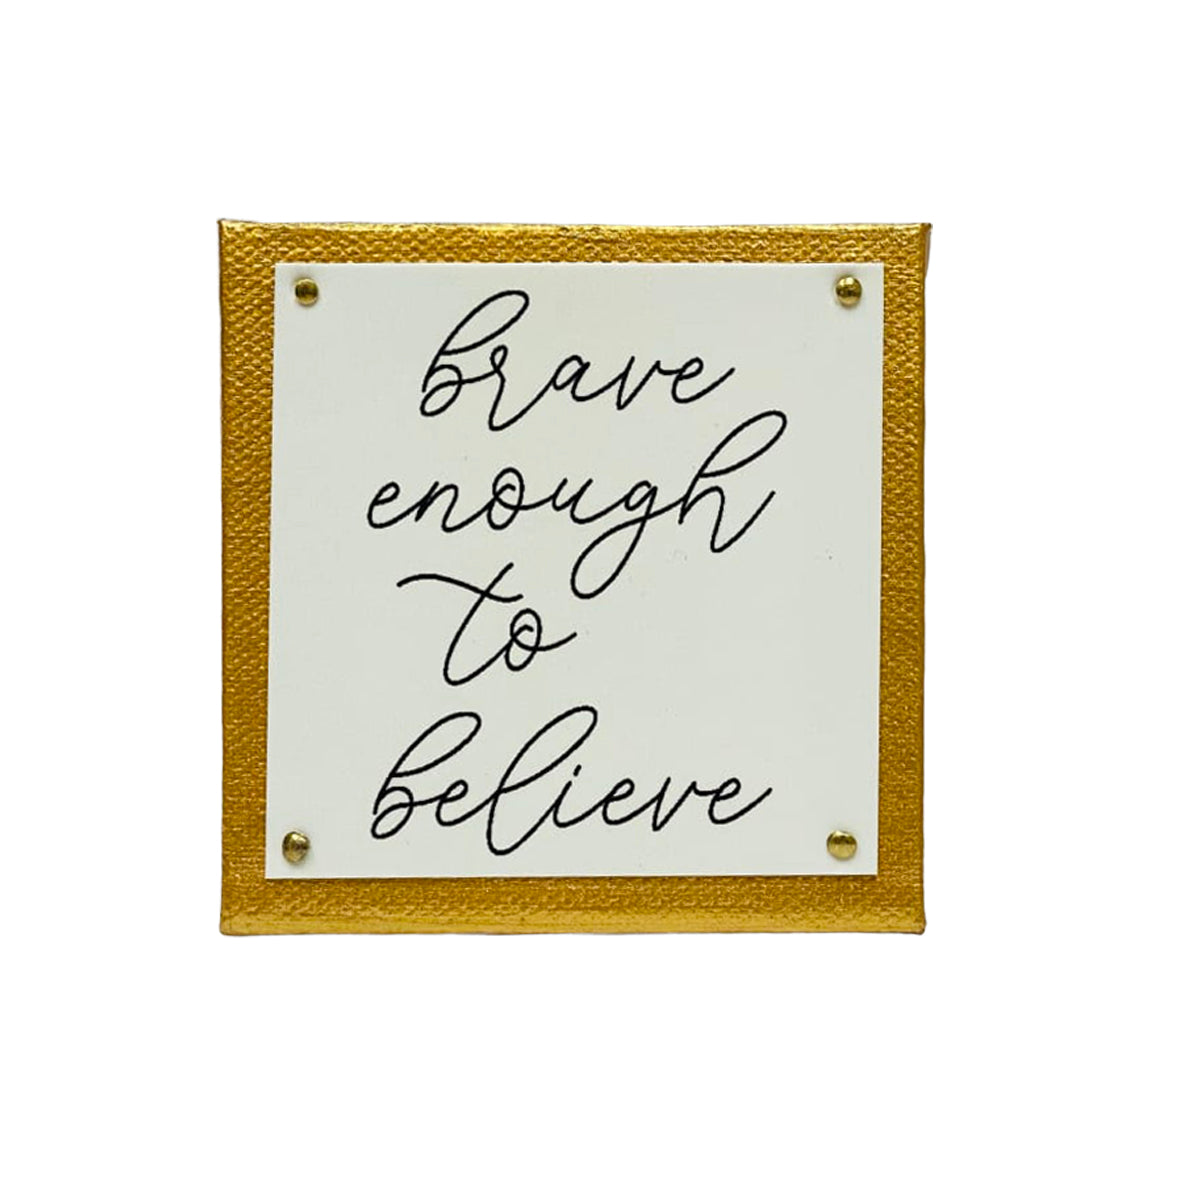 Brave Enough Gold Mini Inspirational Sign